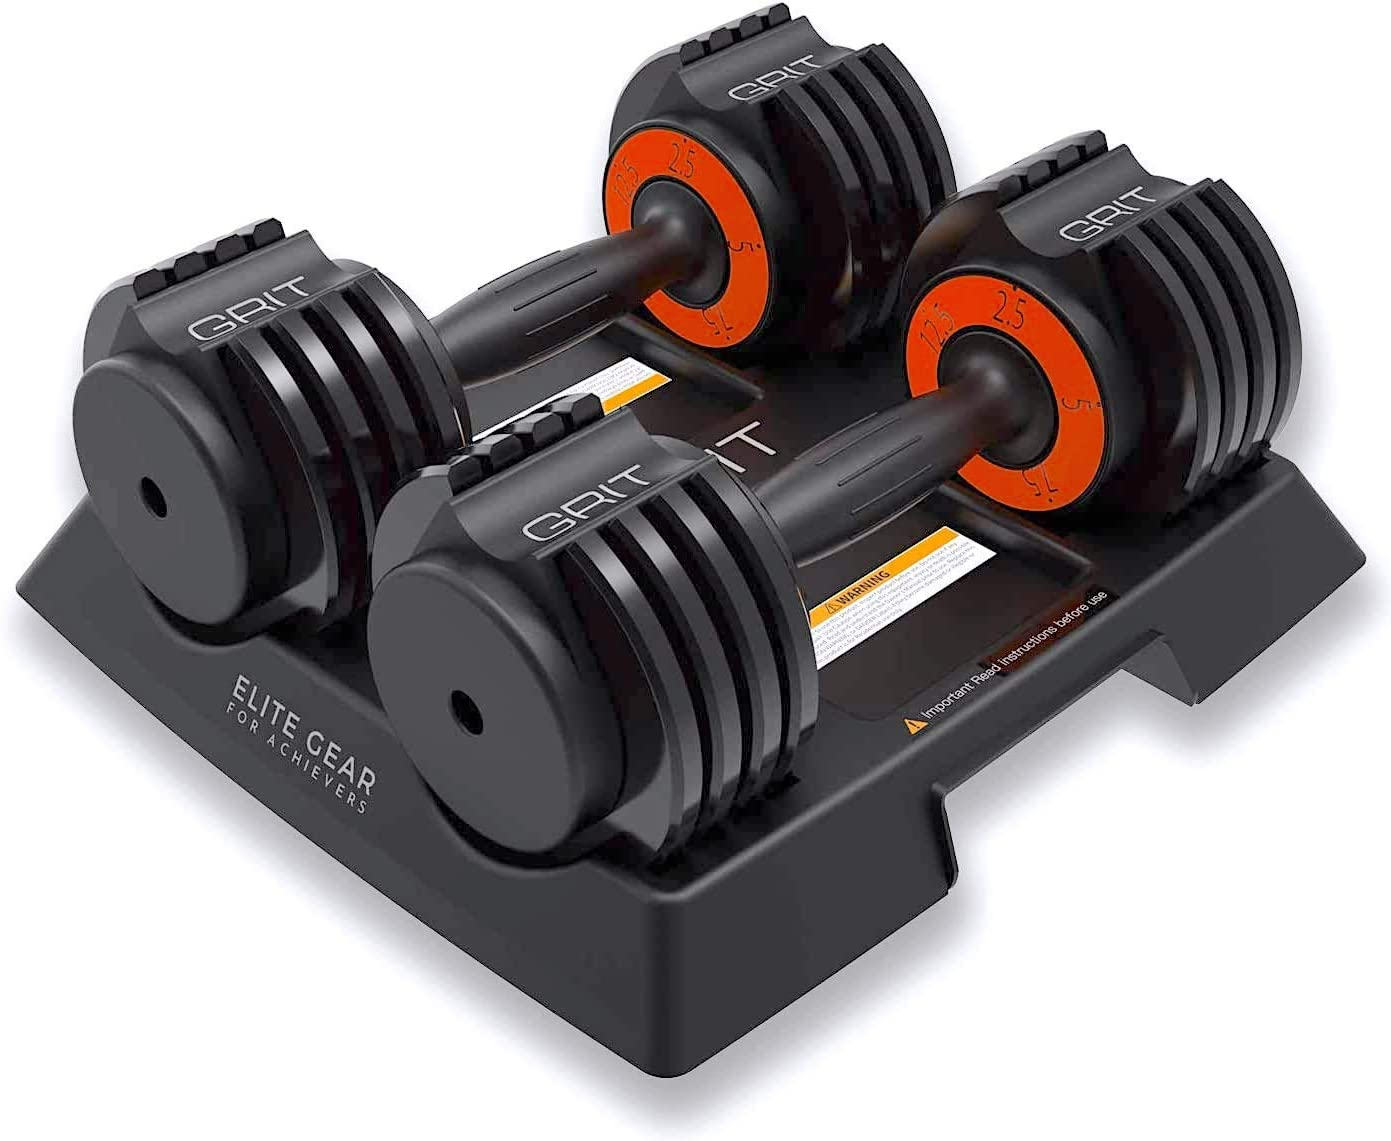 GRIT Adjustable Dumbbells Pair - 2.5 to 12.5 Lb - Fast Adjusting Dial Weights - Workout Exercise, Strength Training and Core Fitness at Home Gym for Men & Women - Easy Removable Plates, 2 Pack 25lb